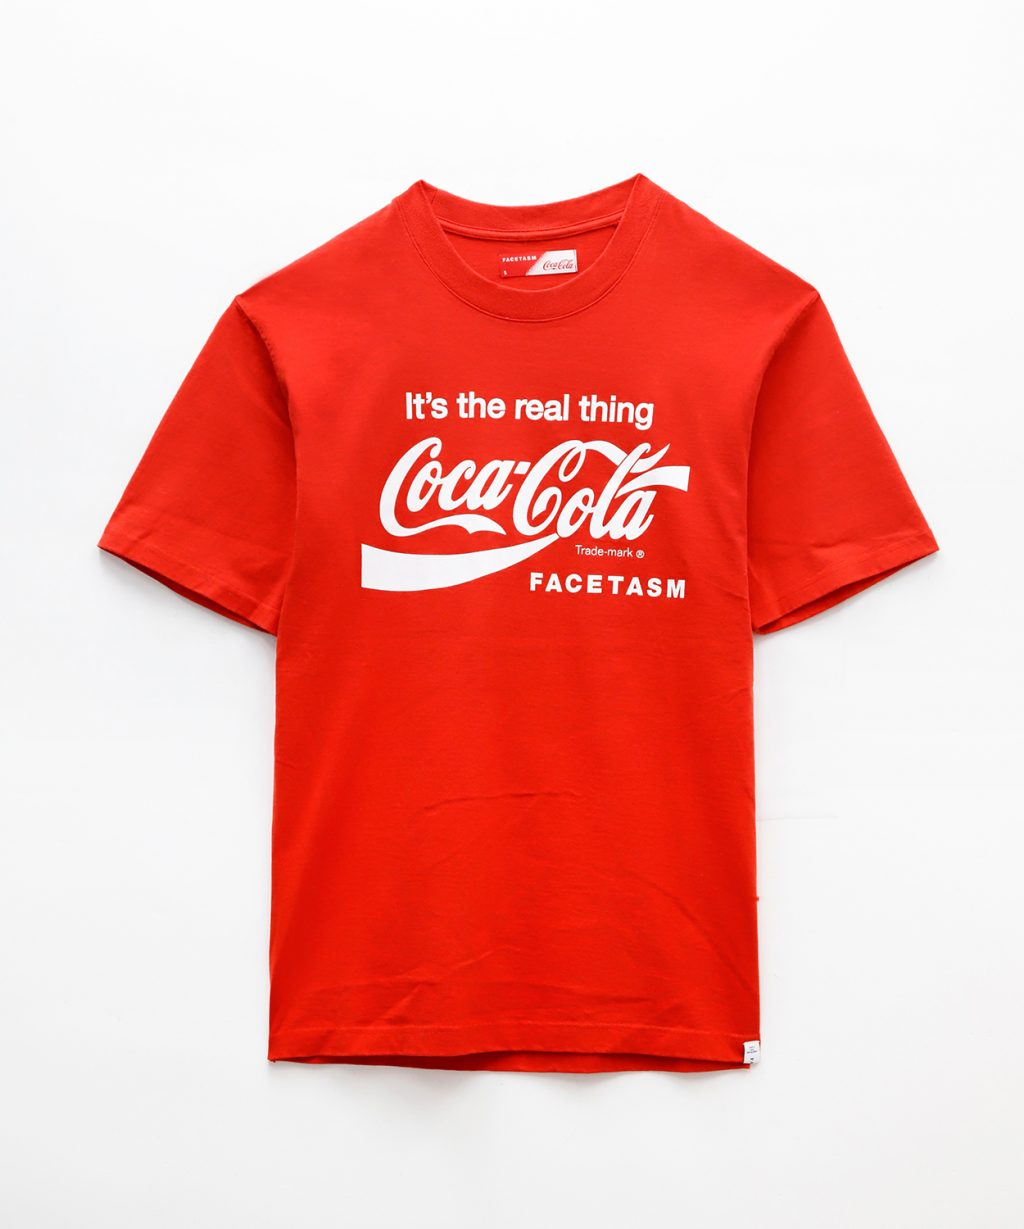 COCA-COLA-BASIC-TEE-red1-1024x1229.jpg